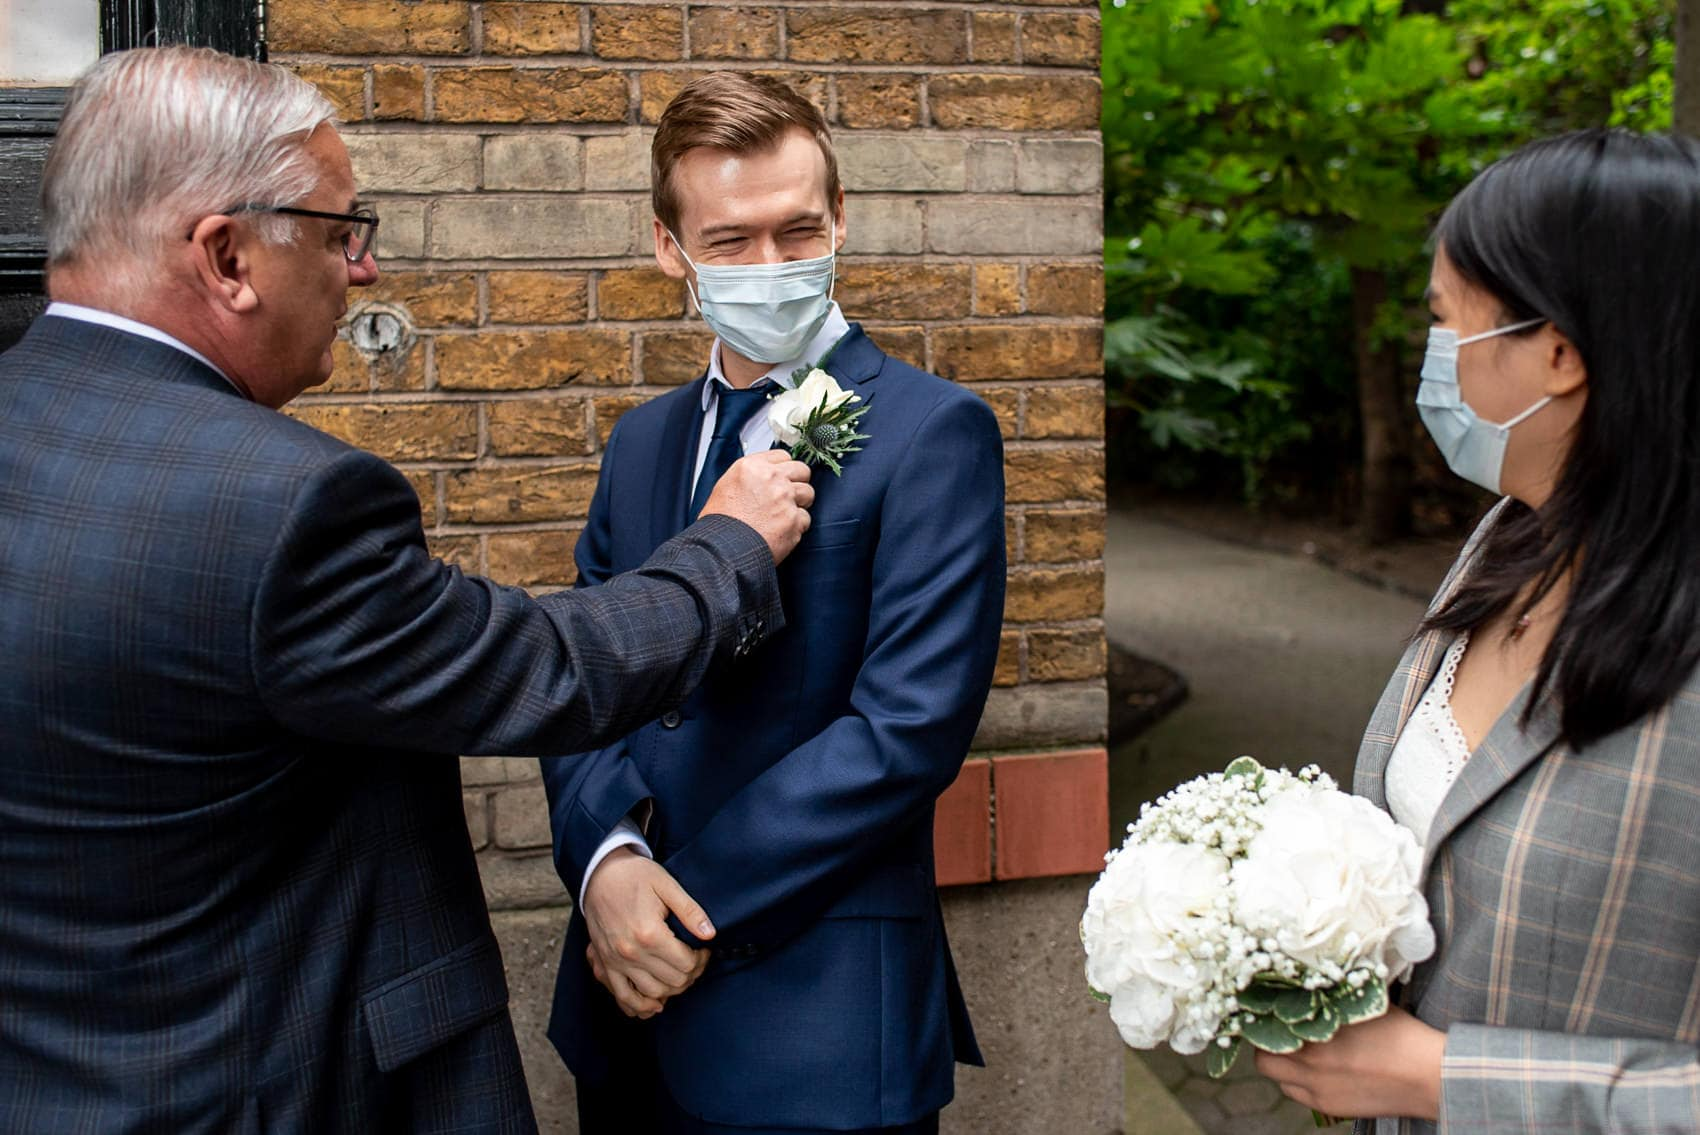 Photo of dad fixing his son's Boutonniere while wearing a mask for his wedding during Coronavirus pandemic